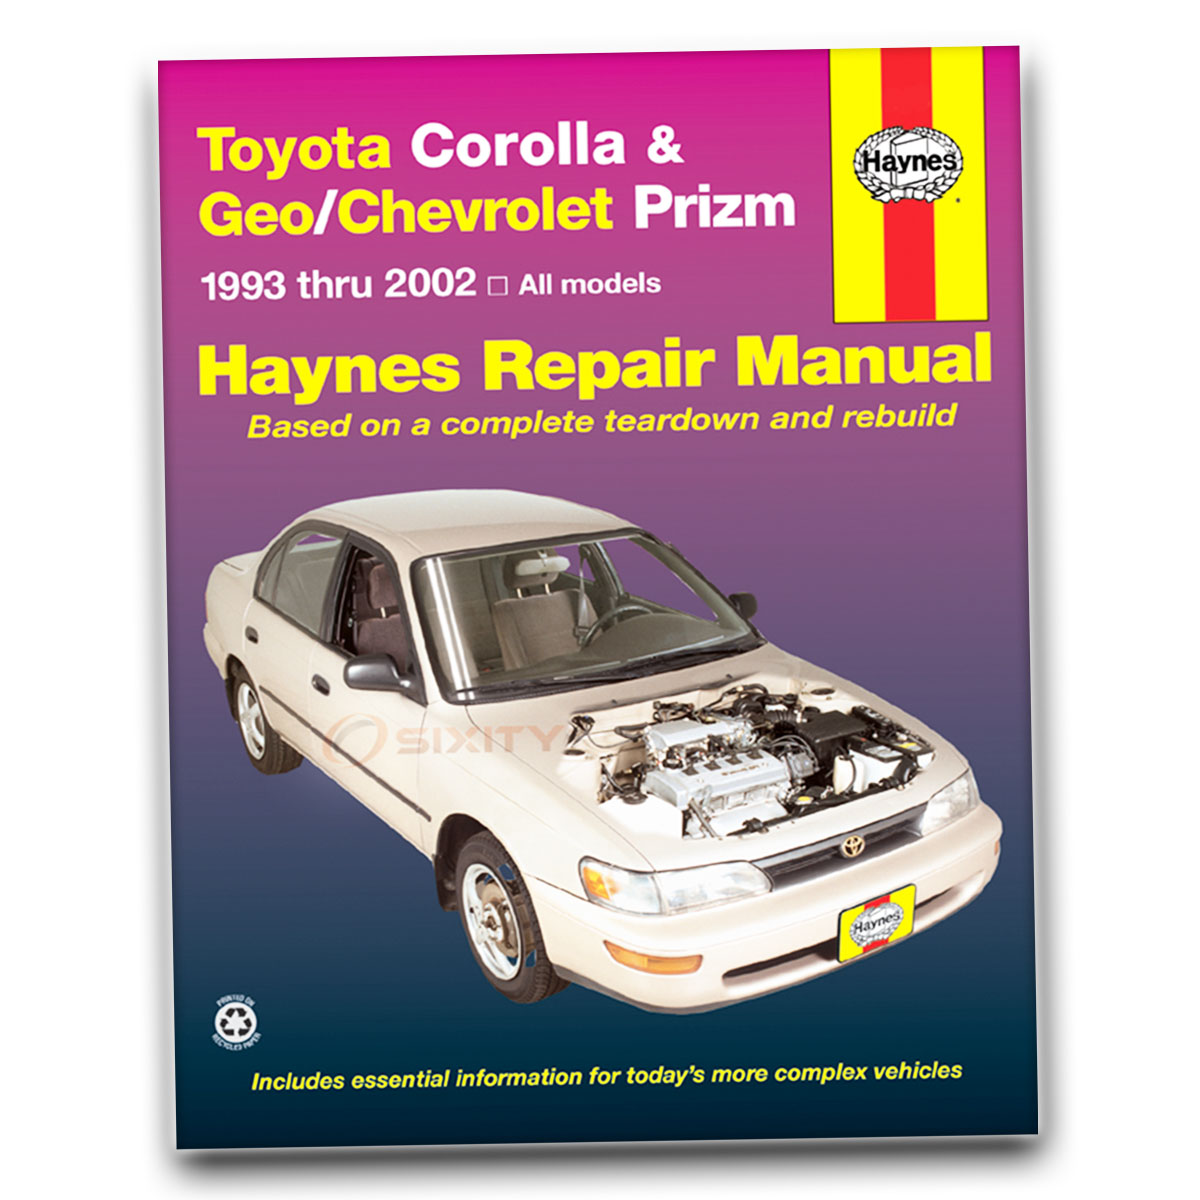 Wrg-1374] daewoo gentra 2002 2011 workshop service repair manual.